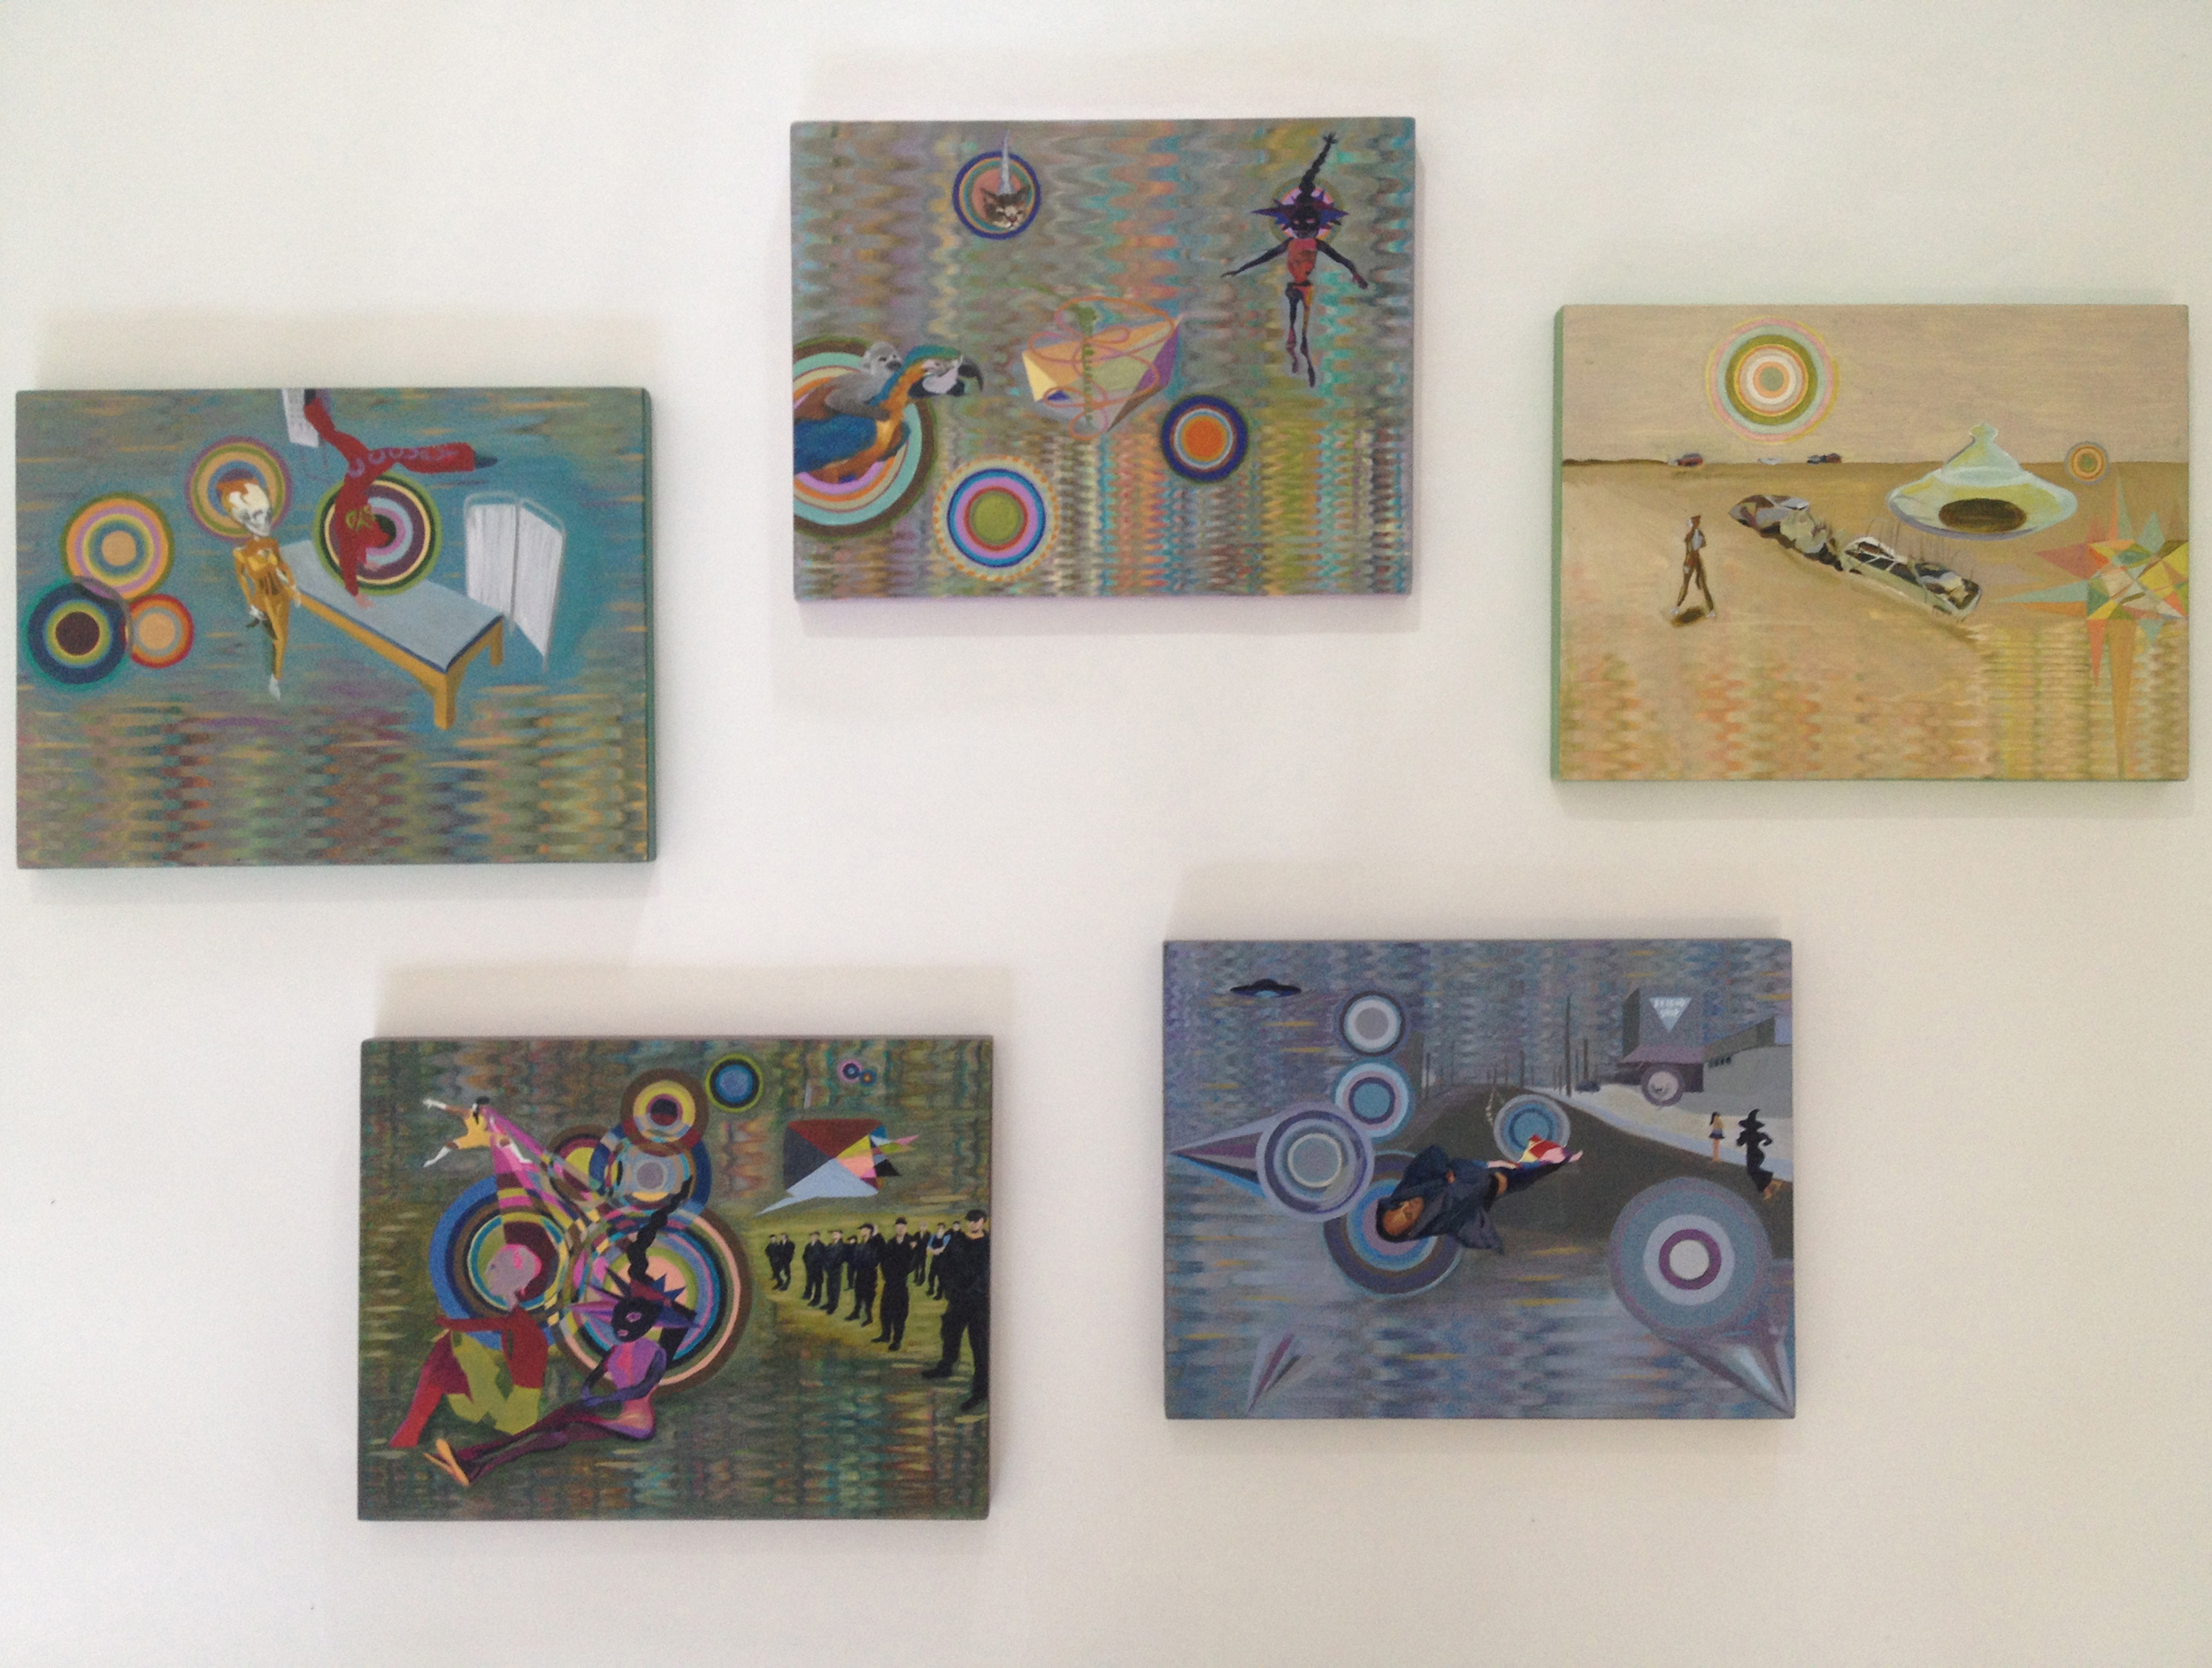 Jacquelene Drinkall,  Weaving My Avatars,  oil on cowrie pine, each 25 cm (height) x 27 cm (length) installed in a cluster 85 cm (height) x 95 cm (length) at Grace Cossington Smith Gallery, 2013. These paintings combine images from virtual world performance, documentation of Occupy Sydney activists, imagery sourced from social media, and other artworks by the artist Jacquelene Drinkall.